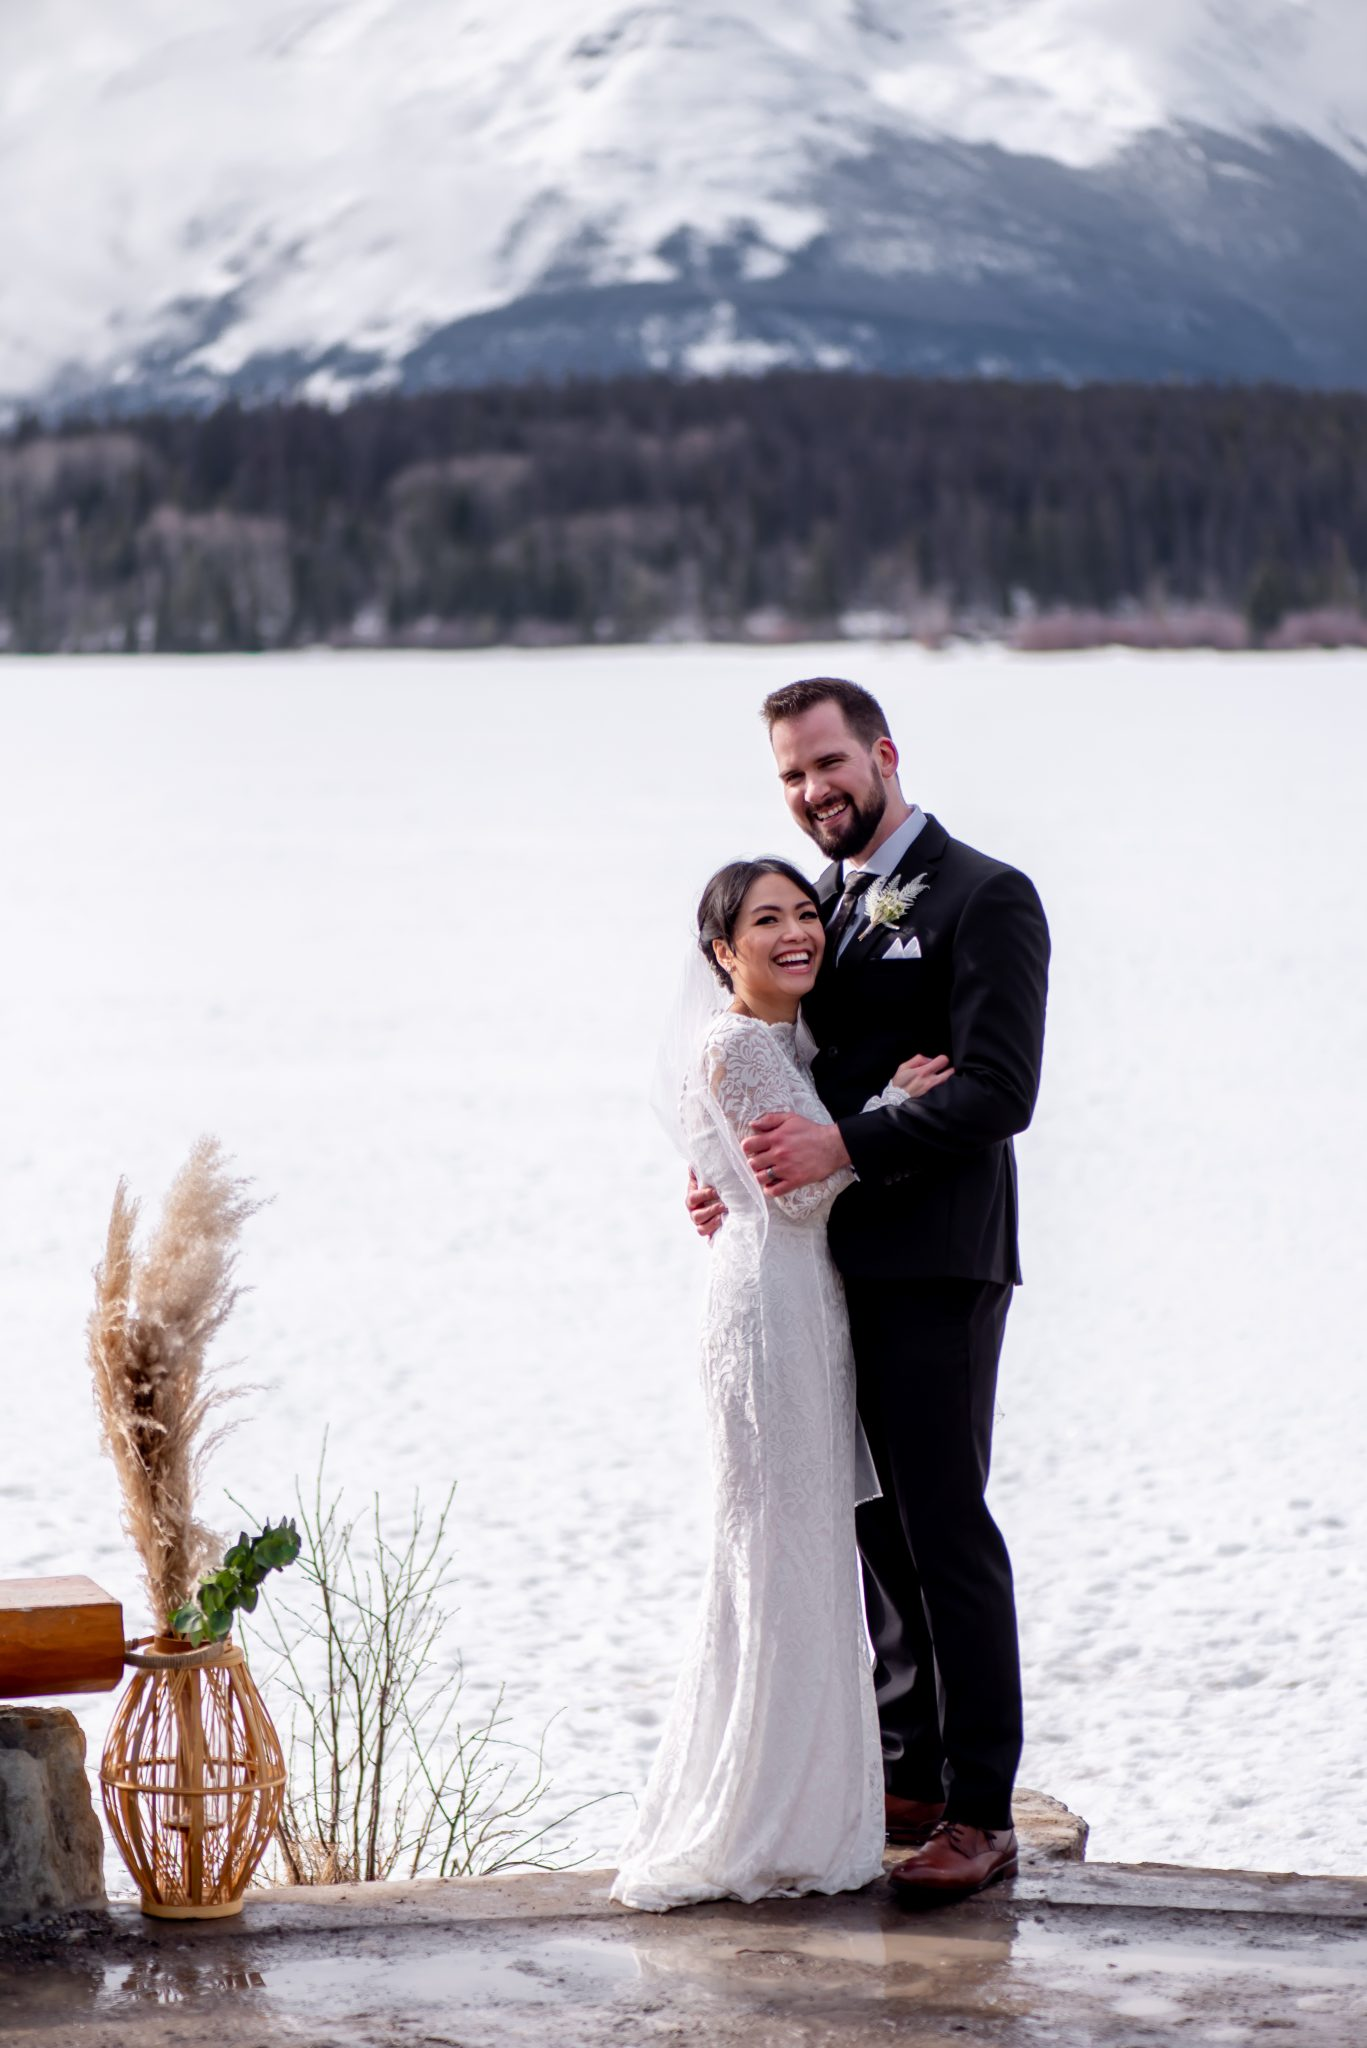 Bride and groom embrace at Pyramid Lake Island after their elopement ceremony in Jasper National Park